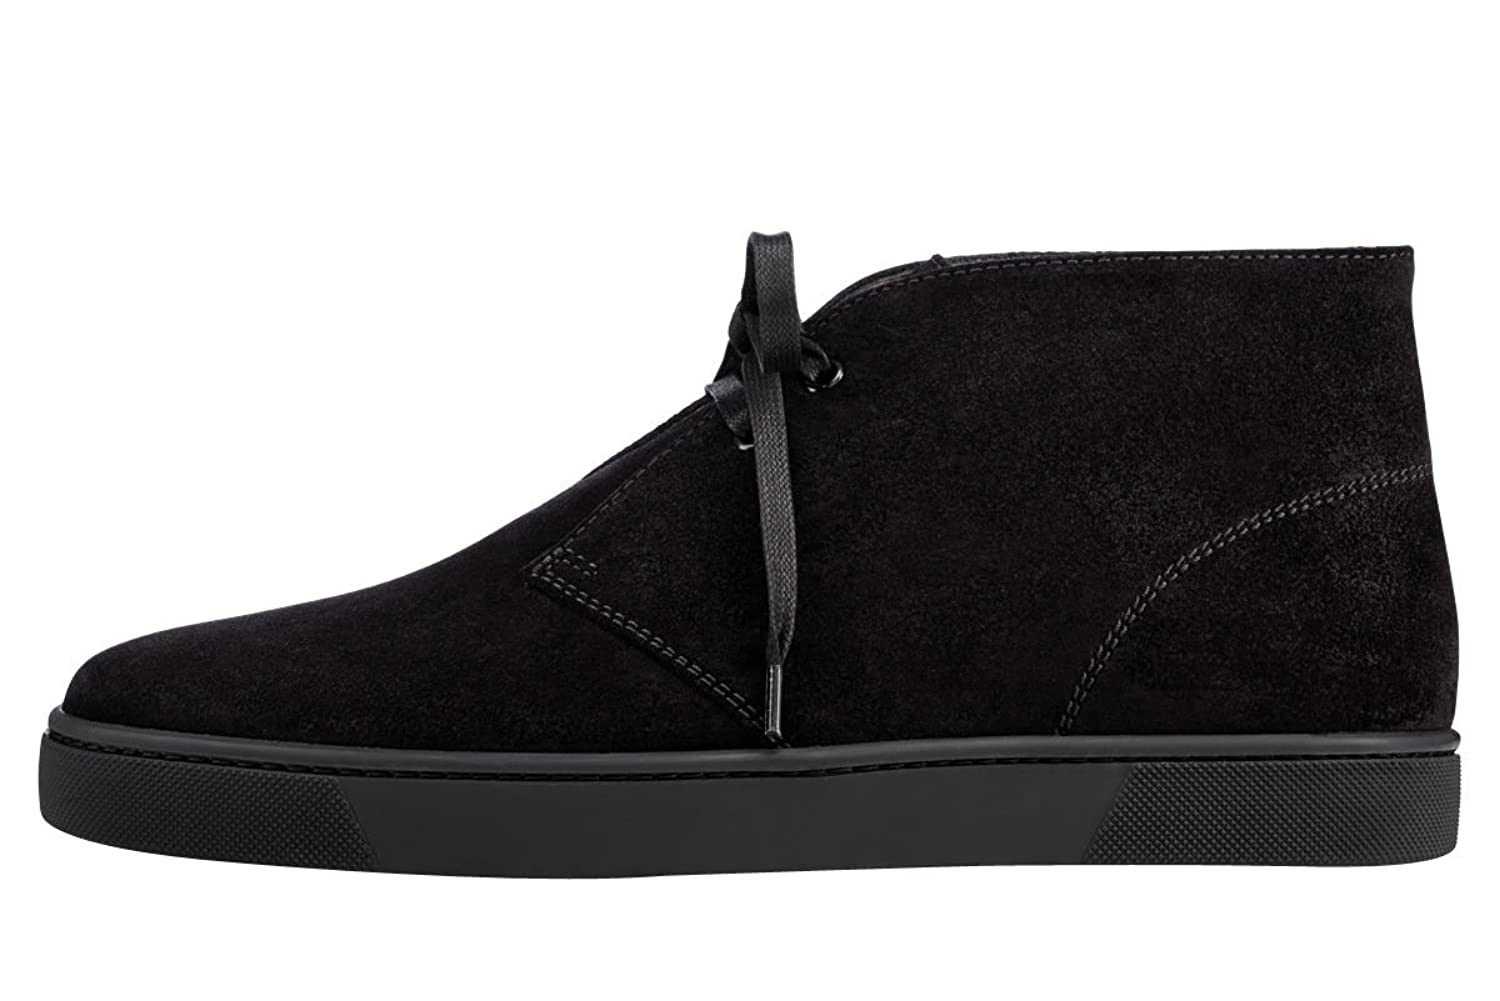 Aibarbie Men's Fashion Brand High-top Boots Lace Up Handcrafted Flat Suede Shoes Black 10 M US